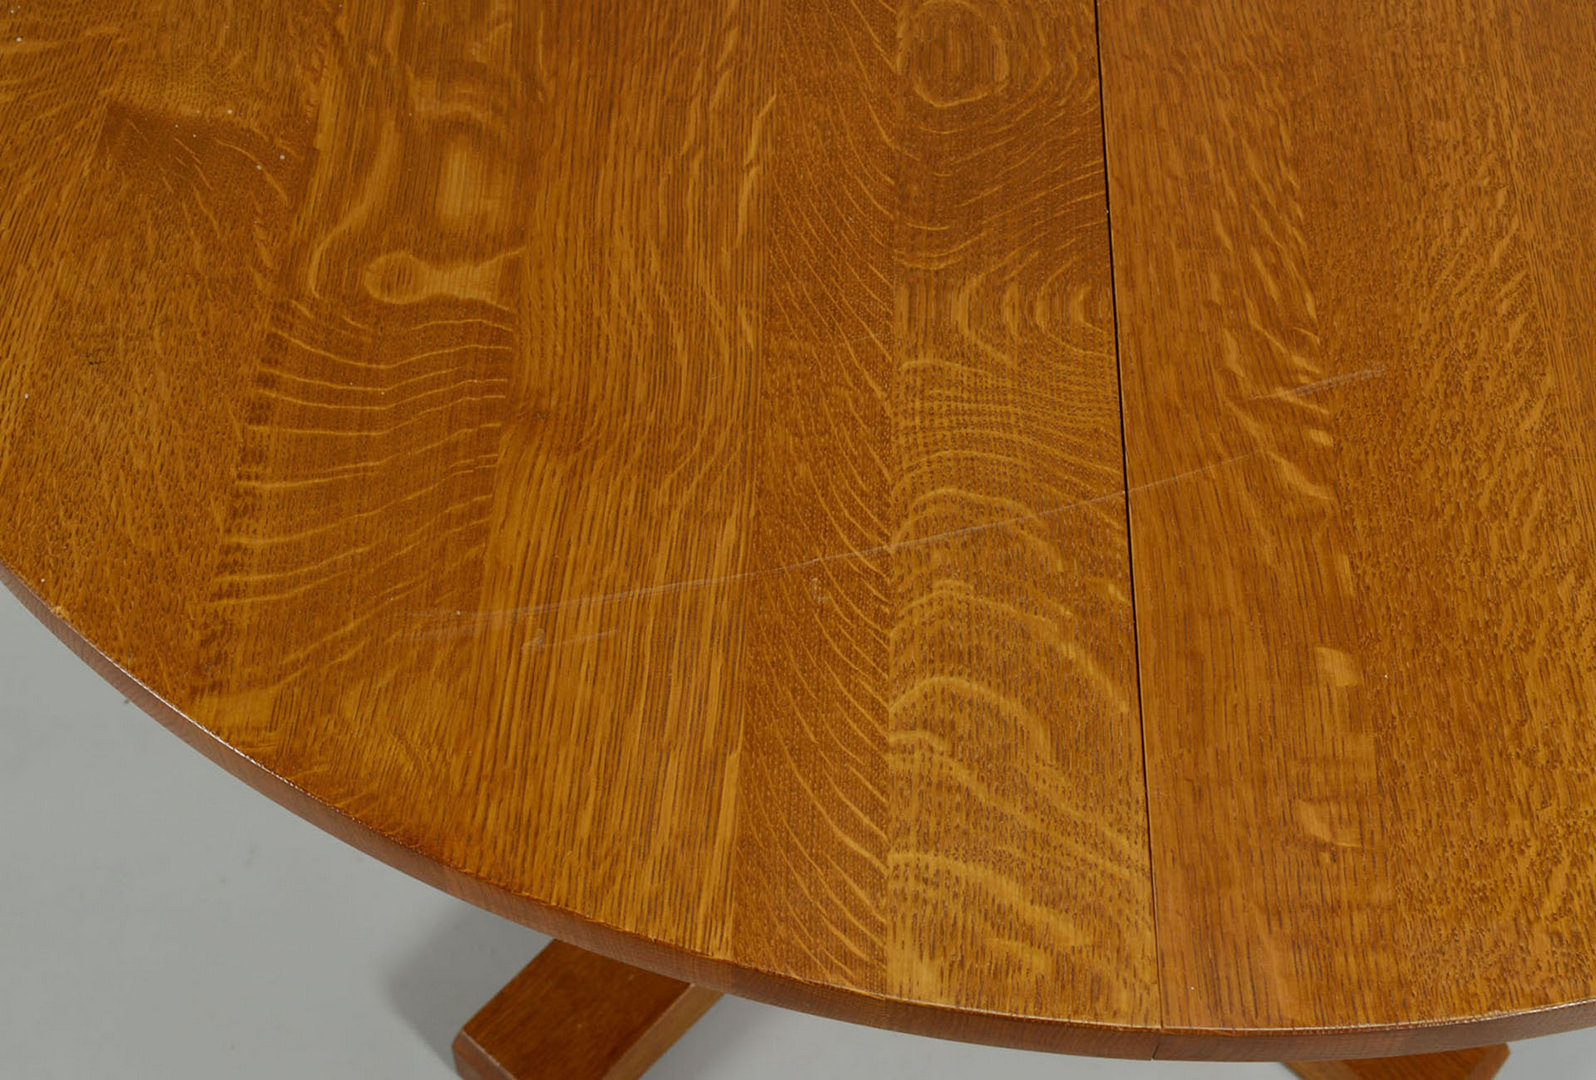 Lot 433: Contemporary Stickley Oak Pedestal Dining Table